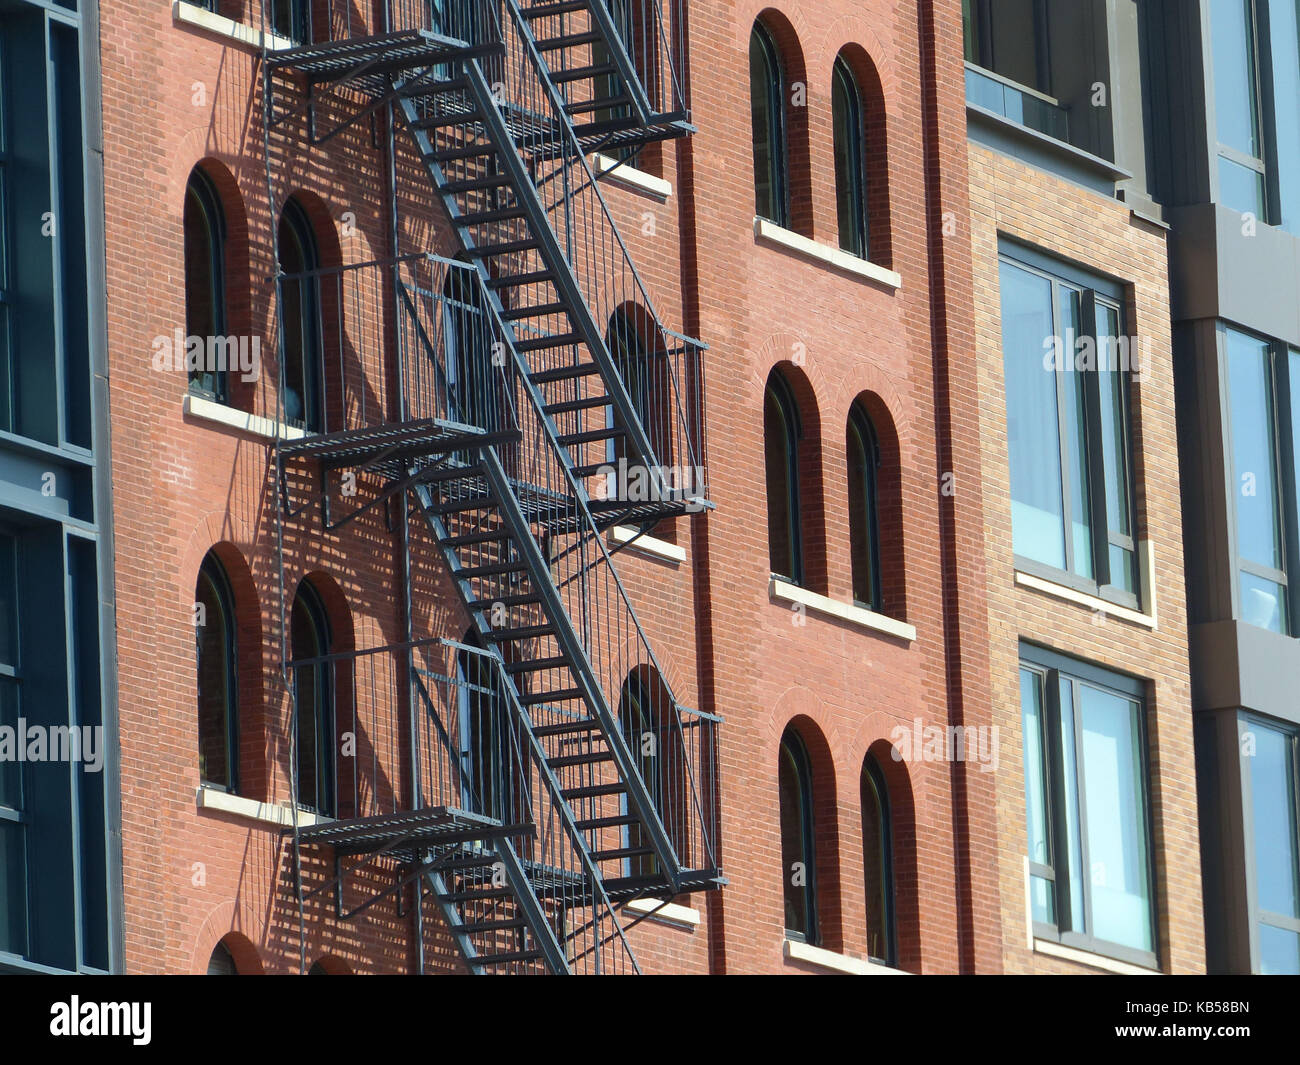 Renovated lofts in TRIBECA, aka Triangle Bellow Canal, is one of the most sought after and expensive residential - Stock Image